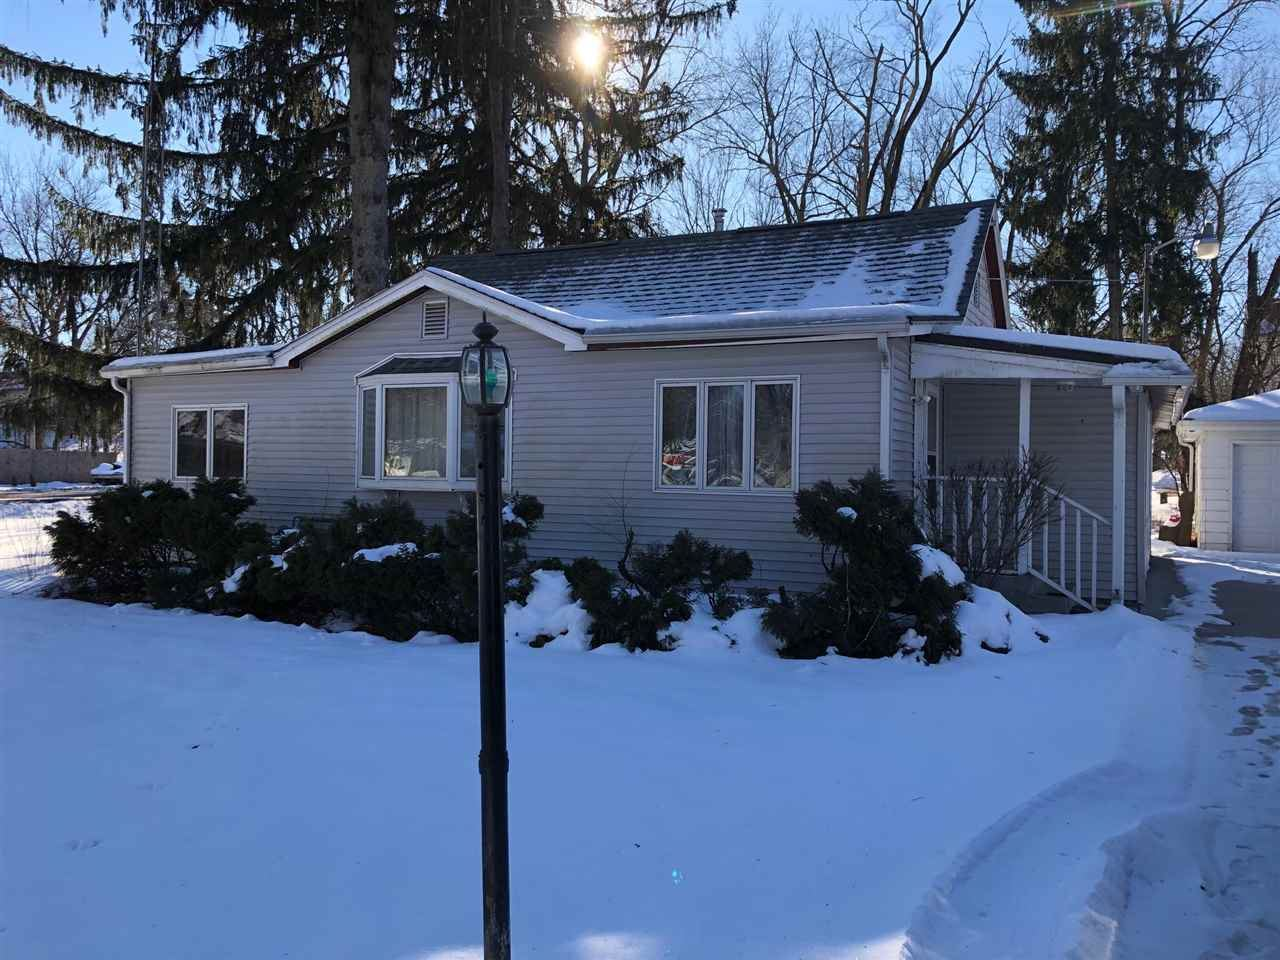 f_1900994_01 Properties For Sale in Edgerton